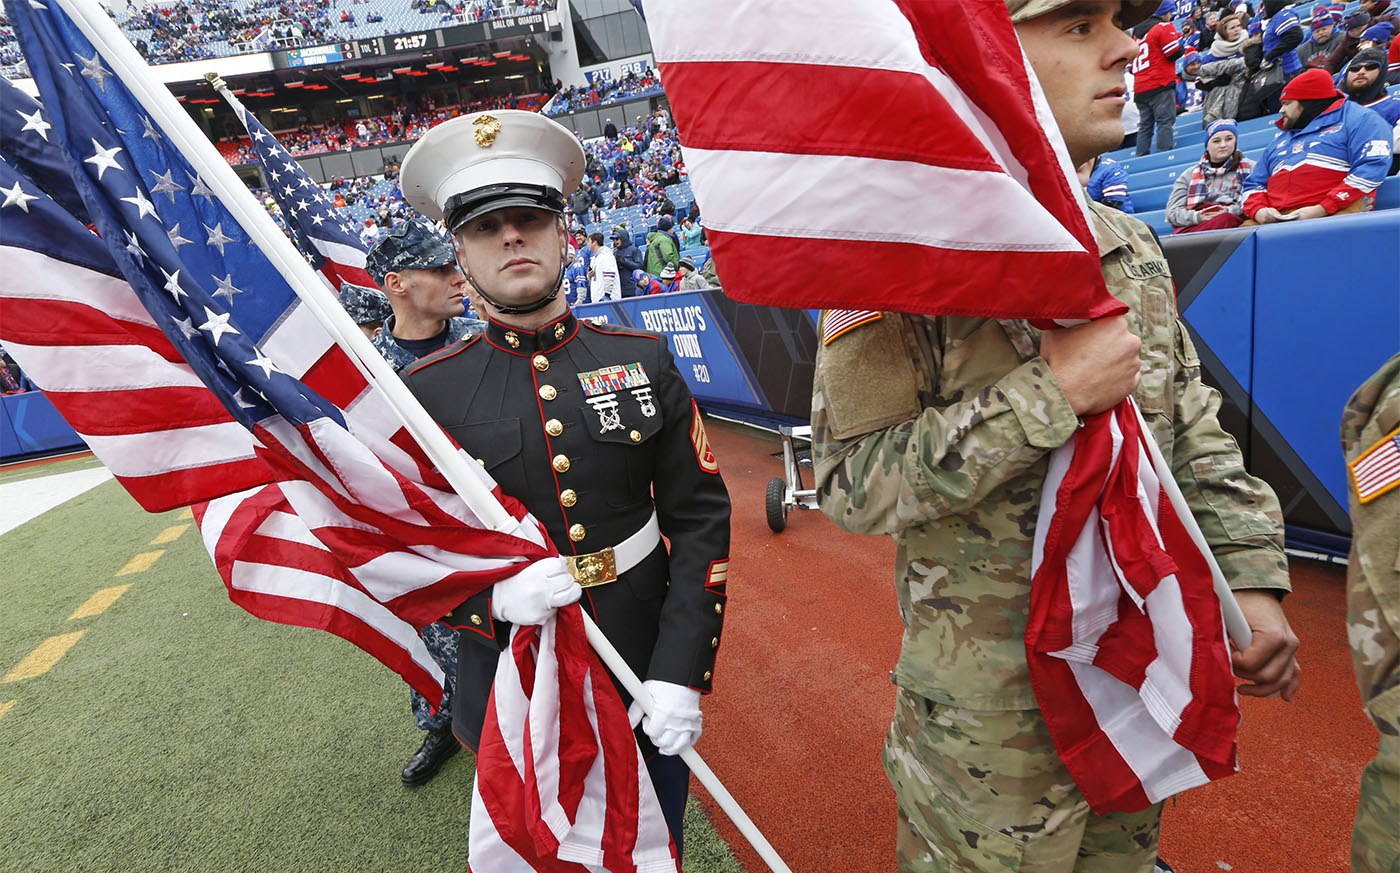 Military servicemen wait of the field as part of the salute to military celebration. Buffalo Bills vs. Jacksonville game today at New Era Field in Orchard Park on Sunday, Nov. 27, 2016. (Robert Kirkham/Buffalo News)